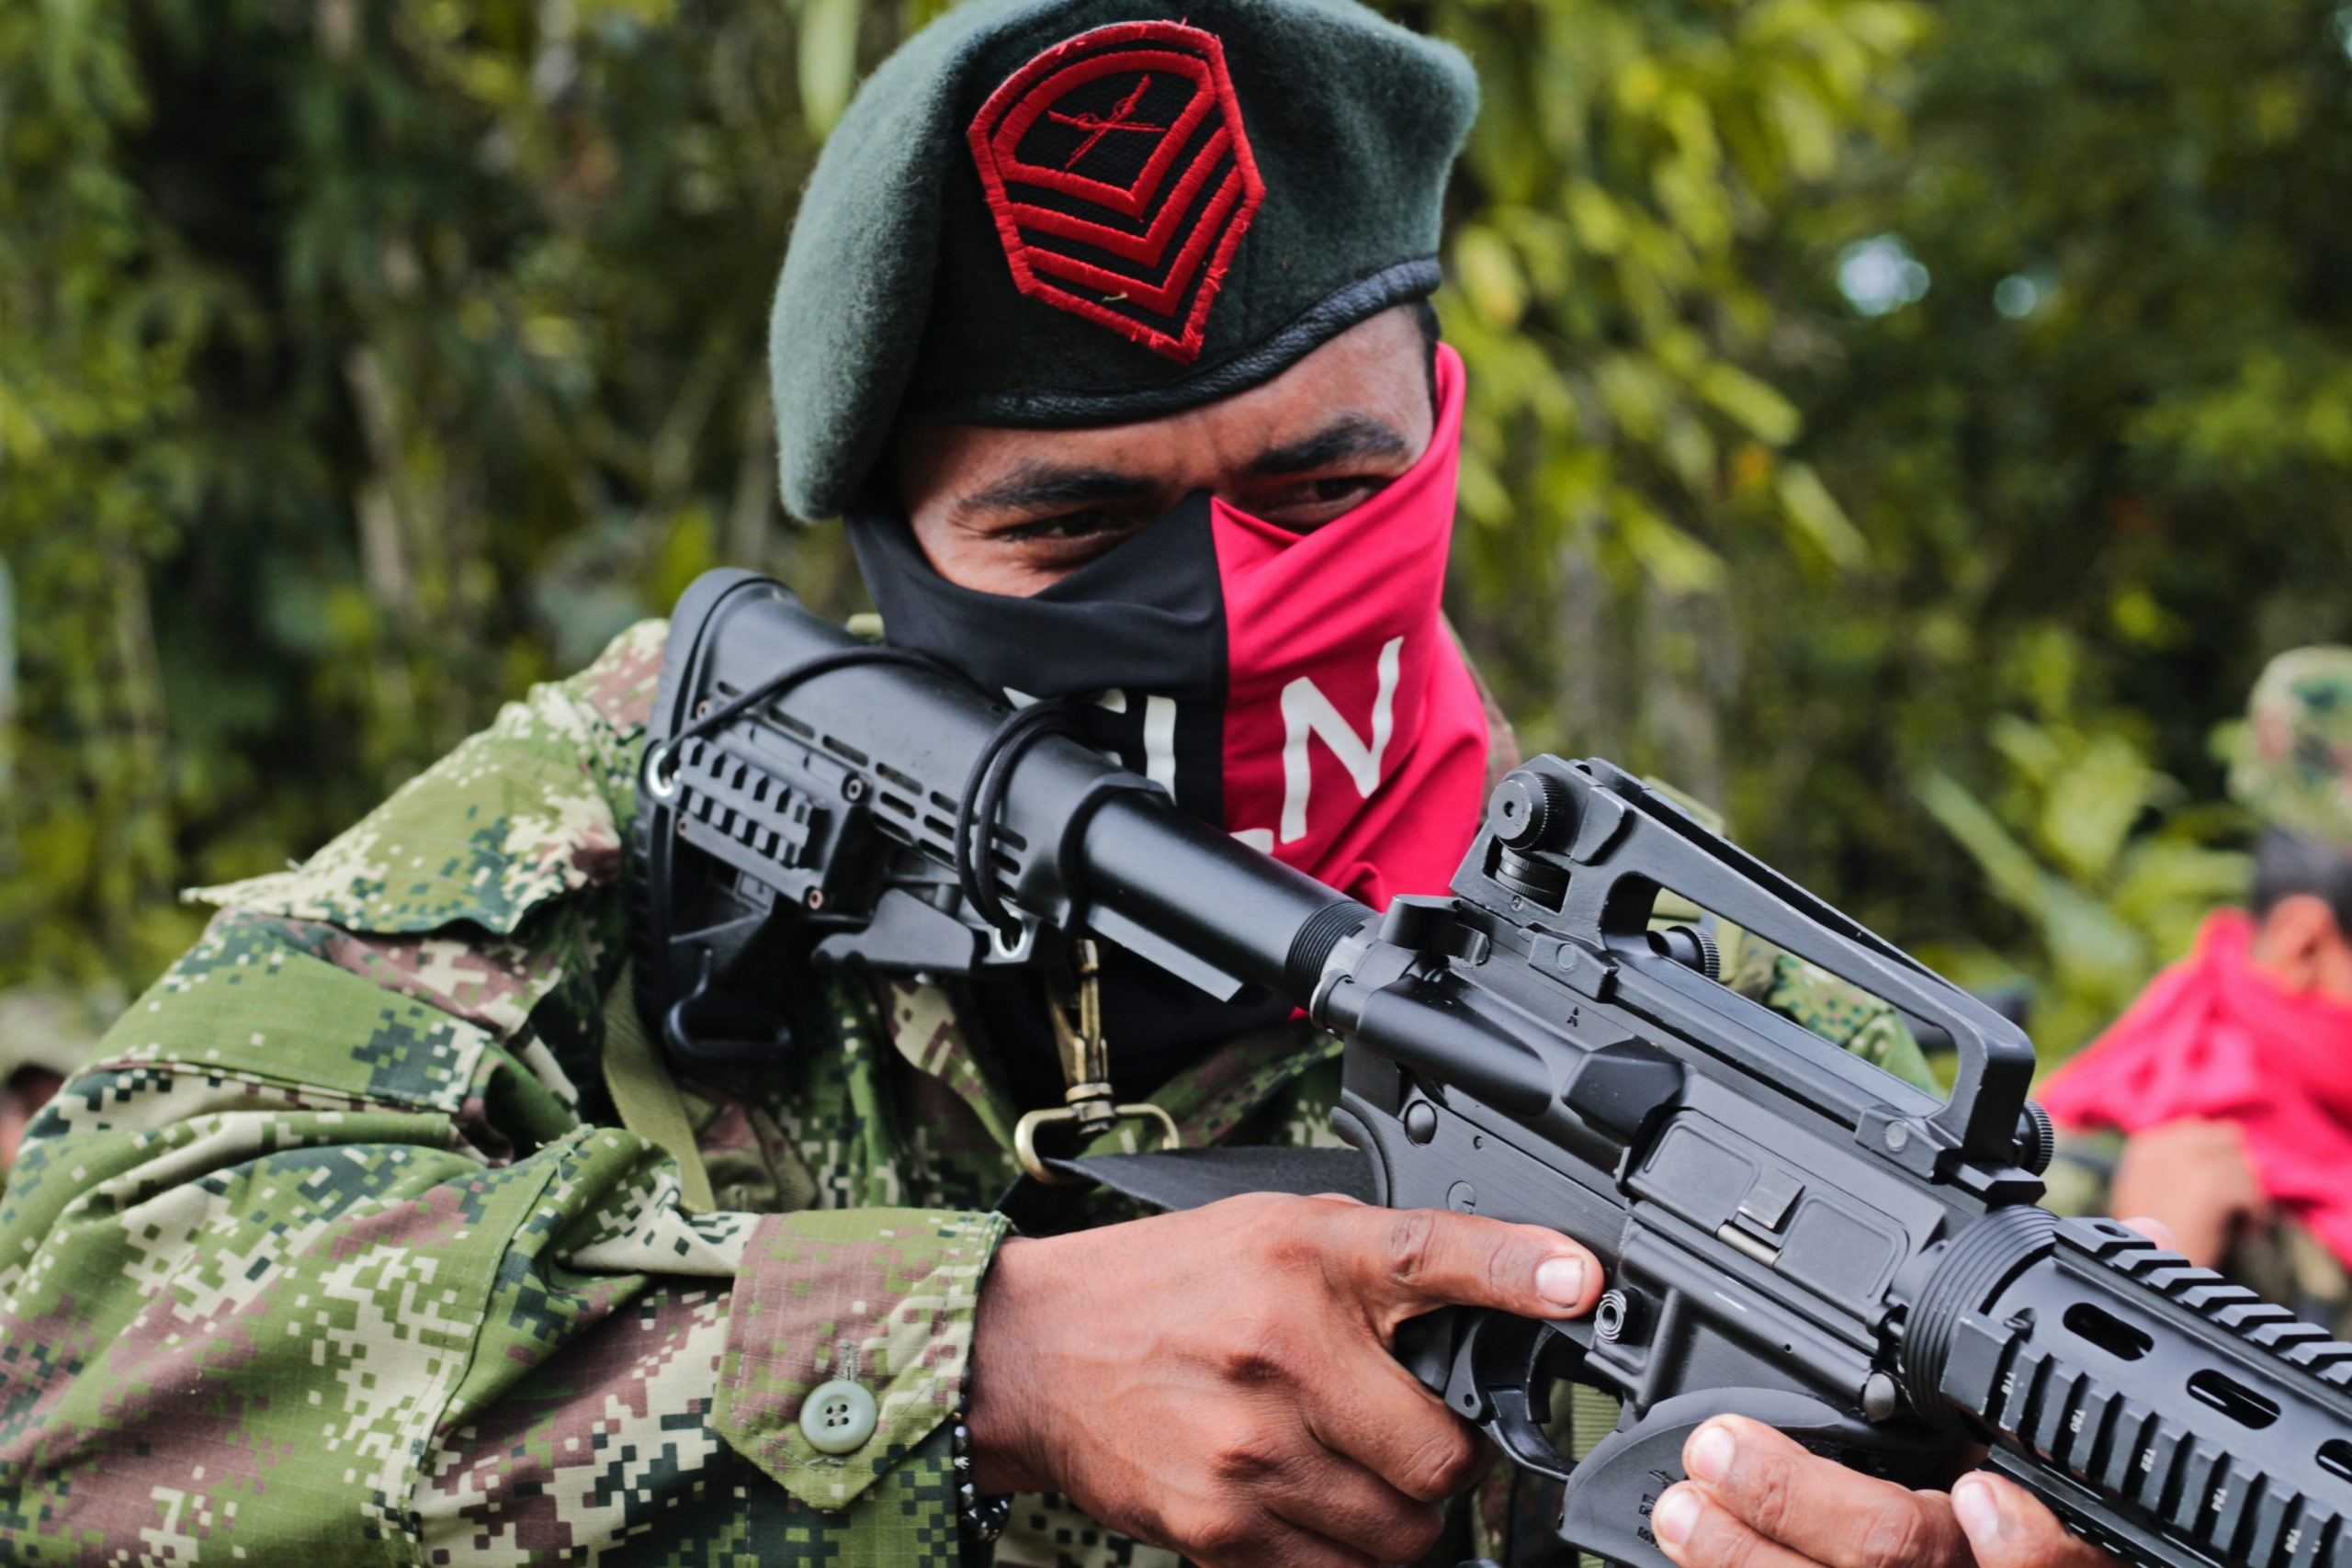 An ELN fighter. Photo courtesy of Brasil de Fato.